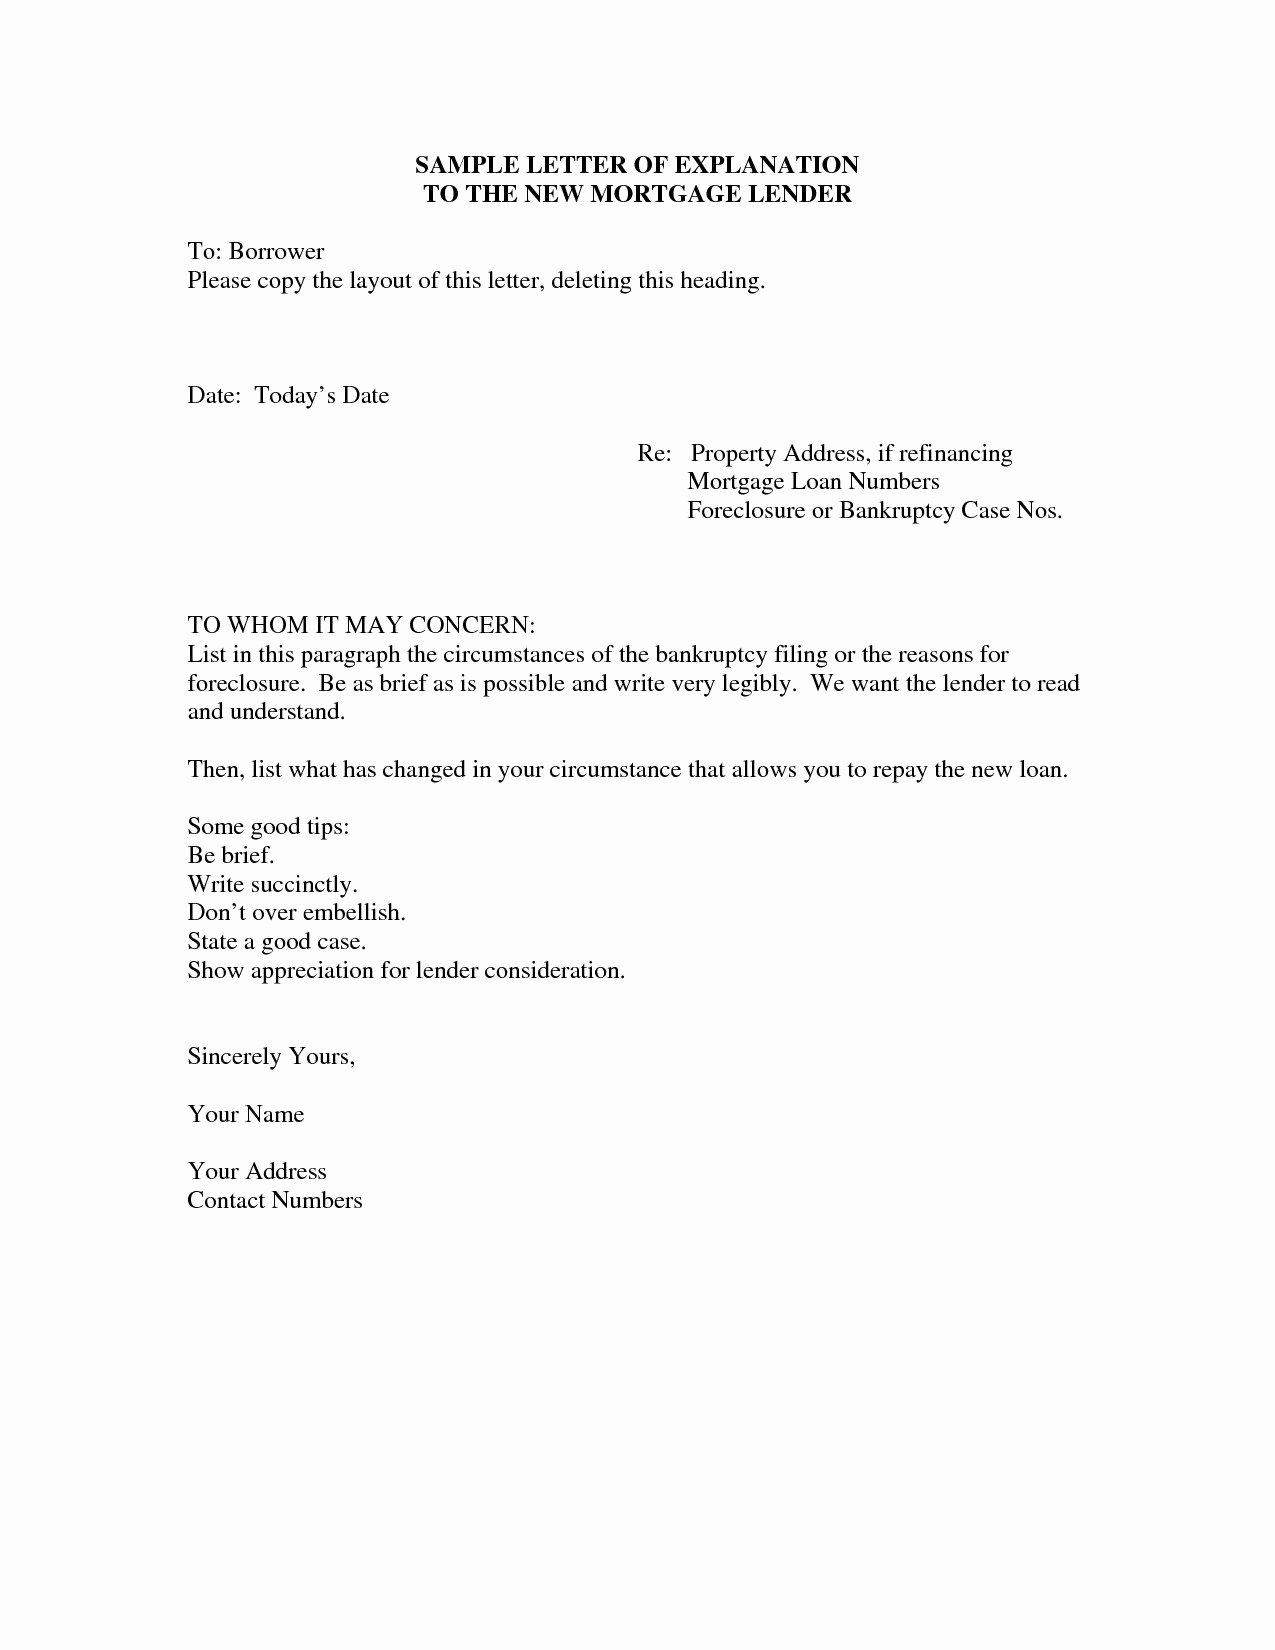 Sample Letter Of Explanation for Mortgage Refinance Fresh Cash Out Refinance Letter Explanation Template Gallery